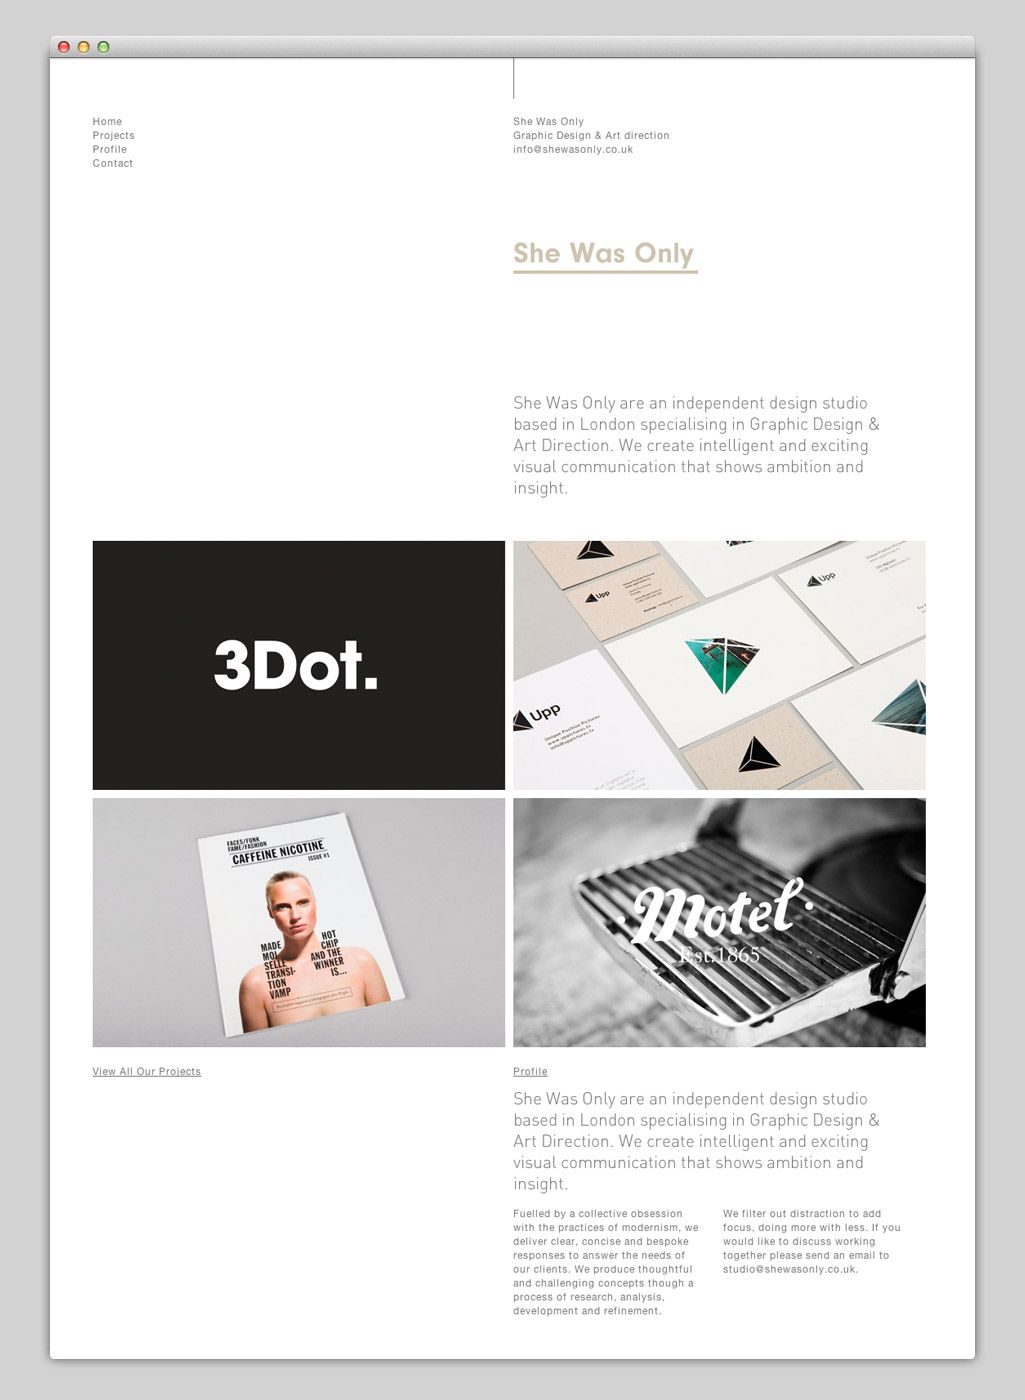 Stay Up To Date With Daily Web Design News Http Www Fb Com Mizkowebdesign Webdesign Beautiful Web Design Web Development Design Portfolio Design Layout